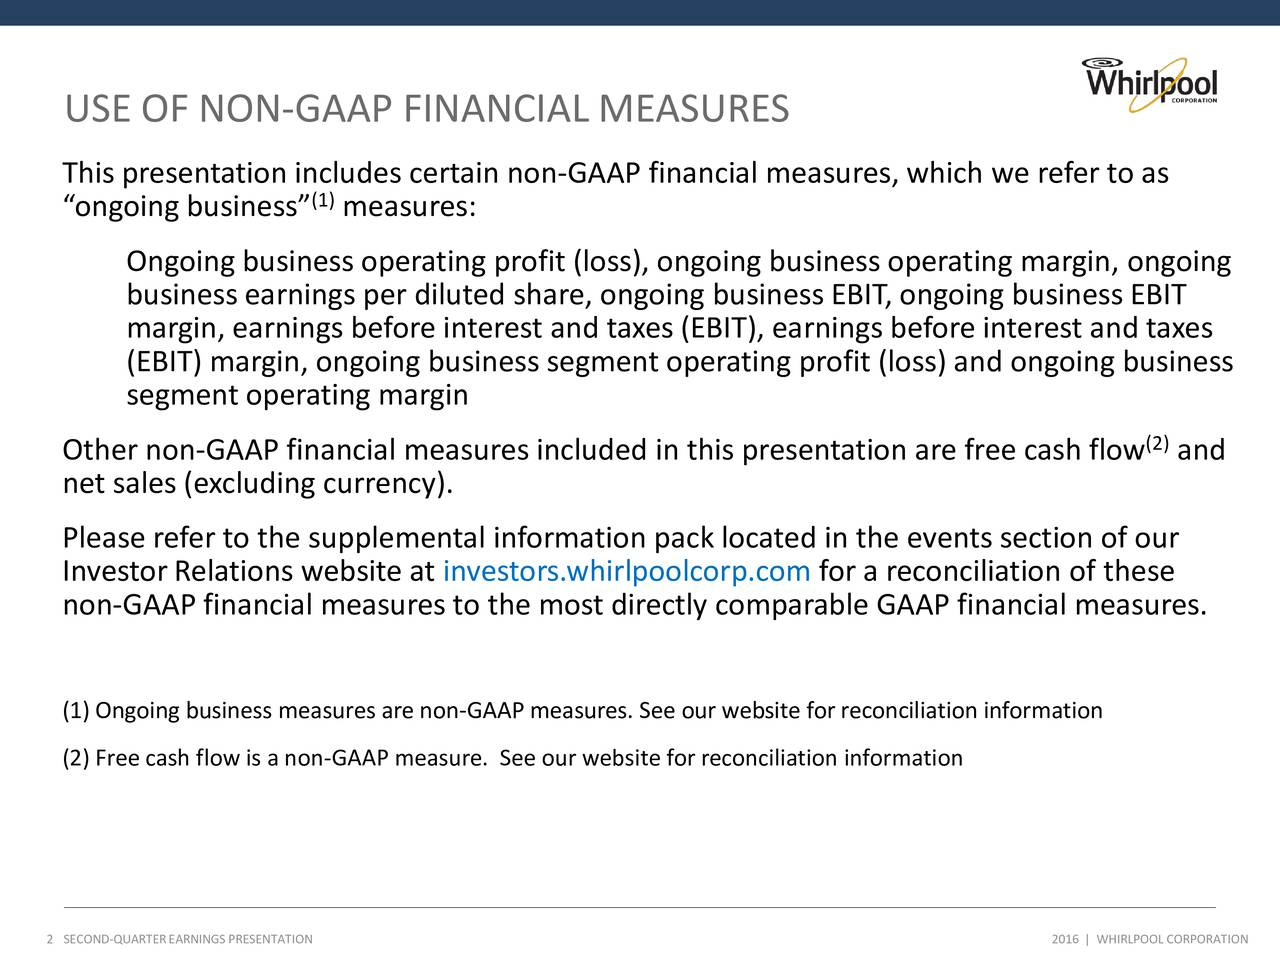 This presentation includes certain non-GAAP financial measures, which we refer to as (1) ongoing business measures: Ongoing business operating profit (loss), ongoing business operating margin, ongoing business earnings per diluted share, ongoing business EBIT, ongoing business EBIT margin, earnings before interest and taxes (EBIT), earnings before interest and taxes (EBIT) margin, ongoing business segment operating profit (loss) and ongoing business segment operating margin Other non-GAAP financial measures included in this presentation are free cash flow and (2) net sales (excluding currency). Please refer to the supplemental information pack located in the events section of our Investor Relations website at investors.whirlpoolcorp.com for a reconciliation of these non-GAAP financial measures to the most directly comparable GAAP financial measures. (1) Ongoing business measures are non-GAAP measures. See our website for reconciliation information (2) Free cash flow is a non-GAAP measure. See our website for reconciliation information 2SECOND-QUARTEREARNINGS PRESENTATION 2016   WHIRLPOOL CORPORATION